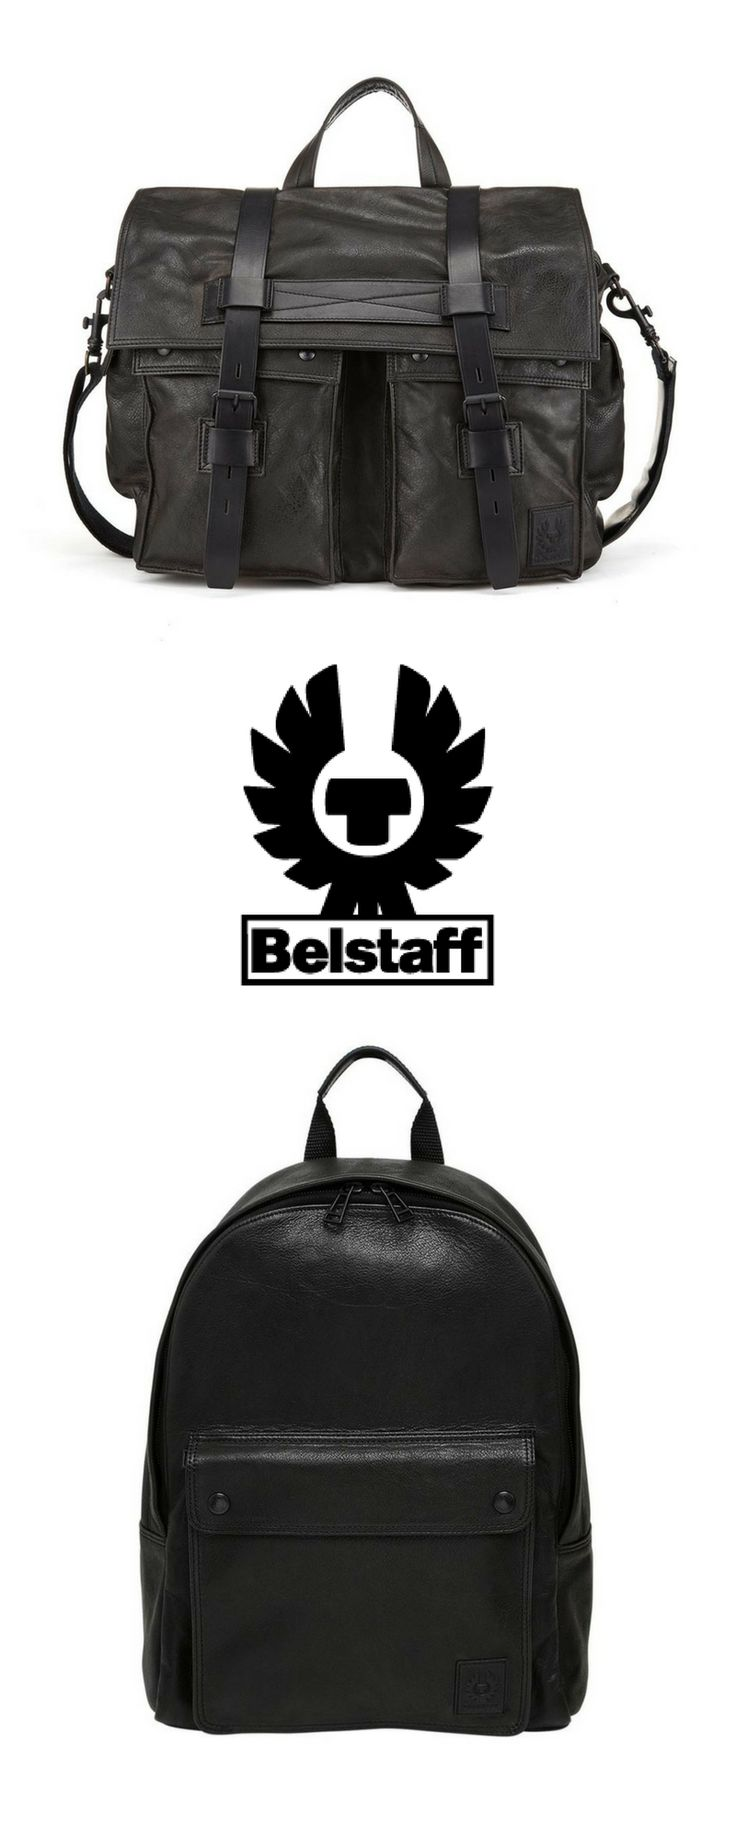 The Belstaff Colonial messenger bag is an iconic men's bag that has been carried by some of cinema's most legendary heroes both on and off screen.Shop Belstaff bags at Betty Hemmings!